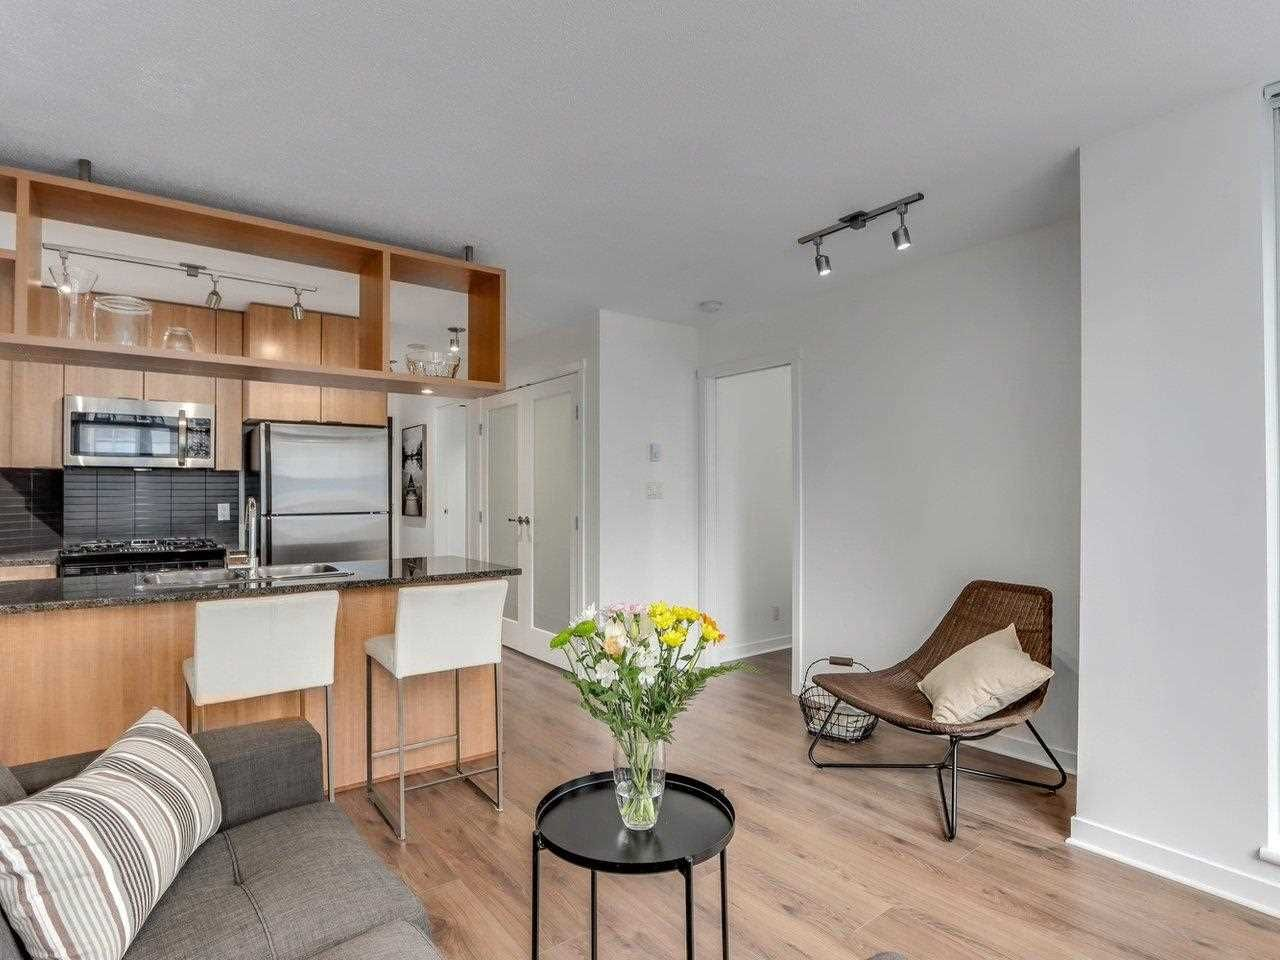 """Main Photo: 1001 1010 RICHARDS Street in Vancouver: Yaletown Condo for sale in """"THE GALLERY"""" (Vancouver West)  : MLS®# R2584548"""